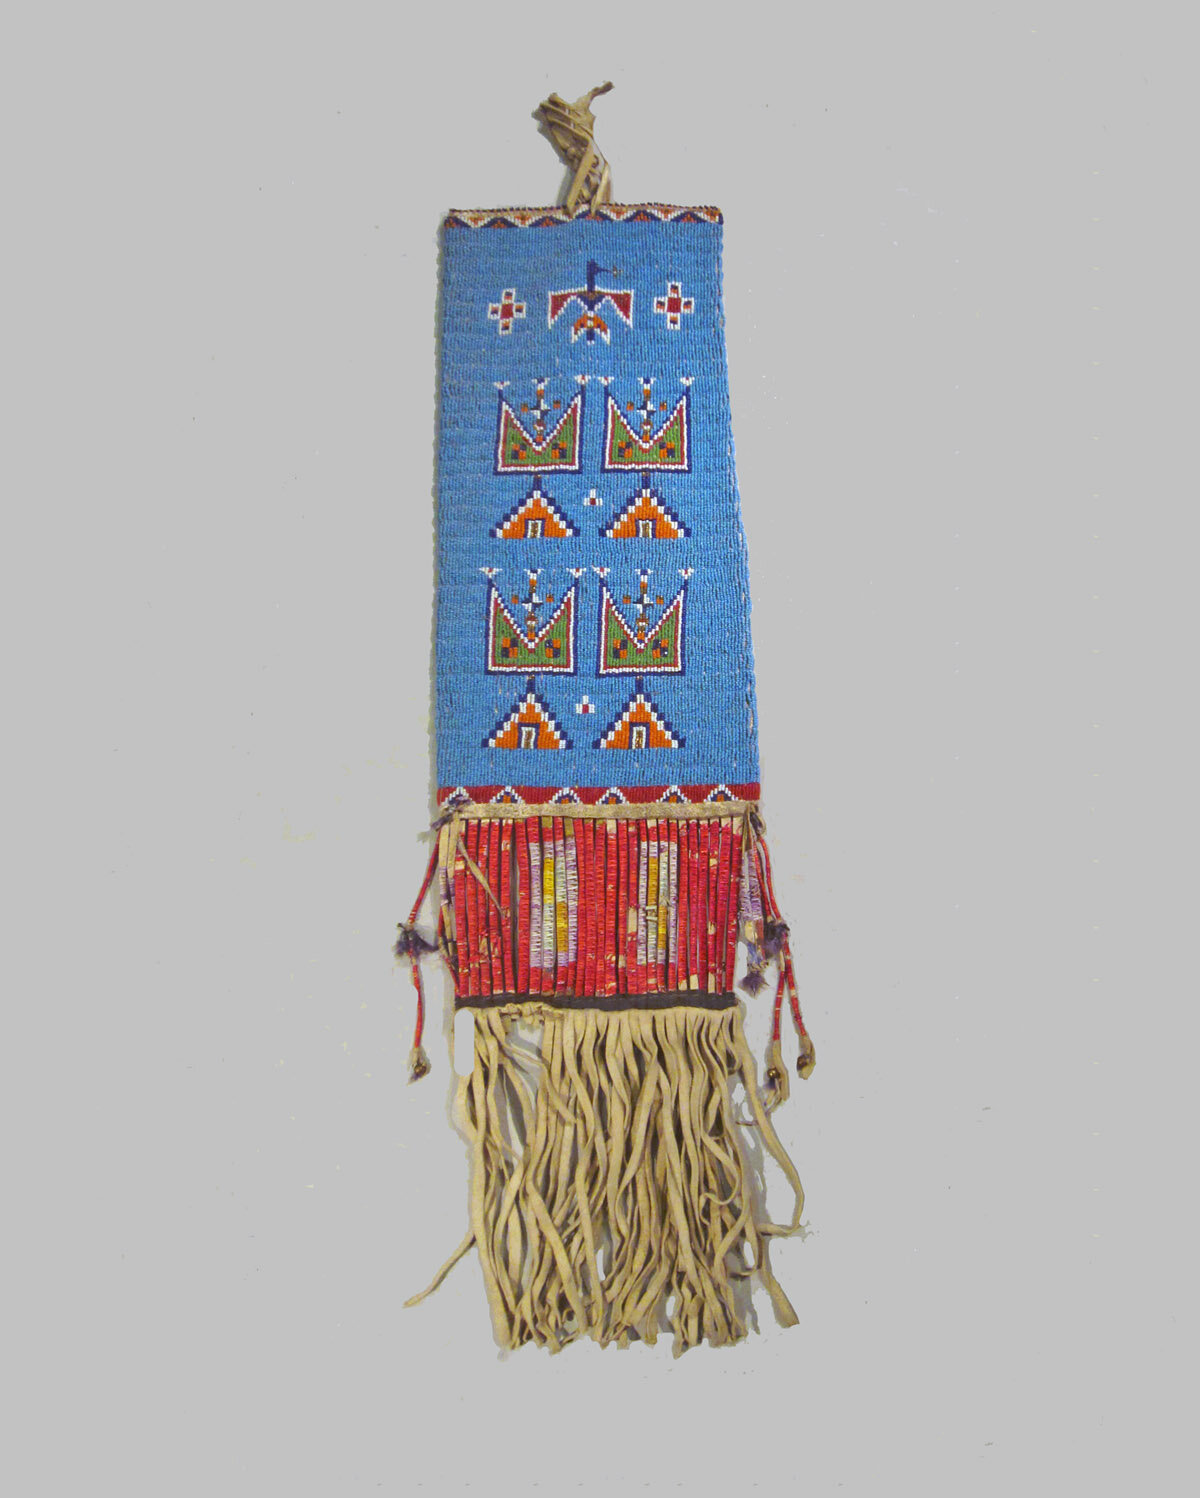 http://www.marcyburns.com/beadwork-and-wood-collection/lakota-pictorial-pipebag-also-called-a-tobacco-bag